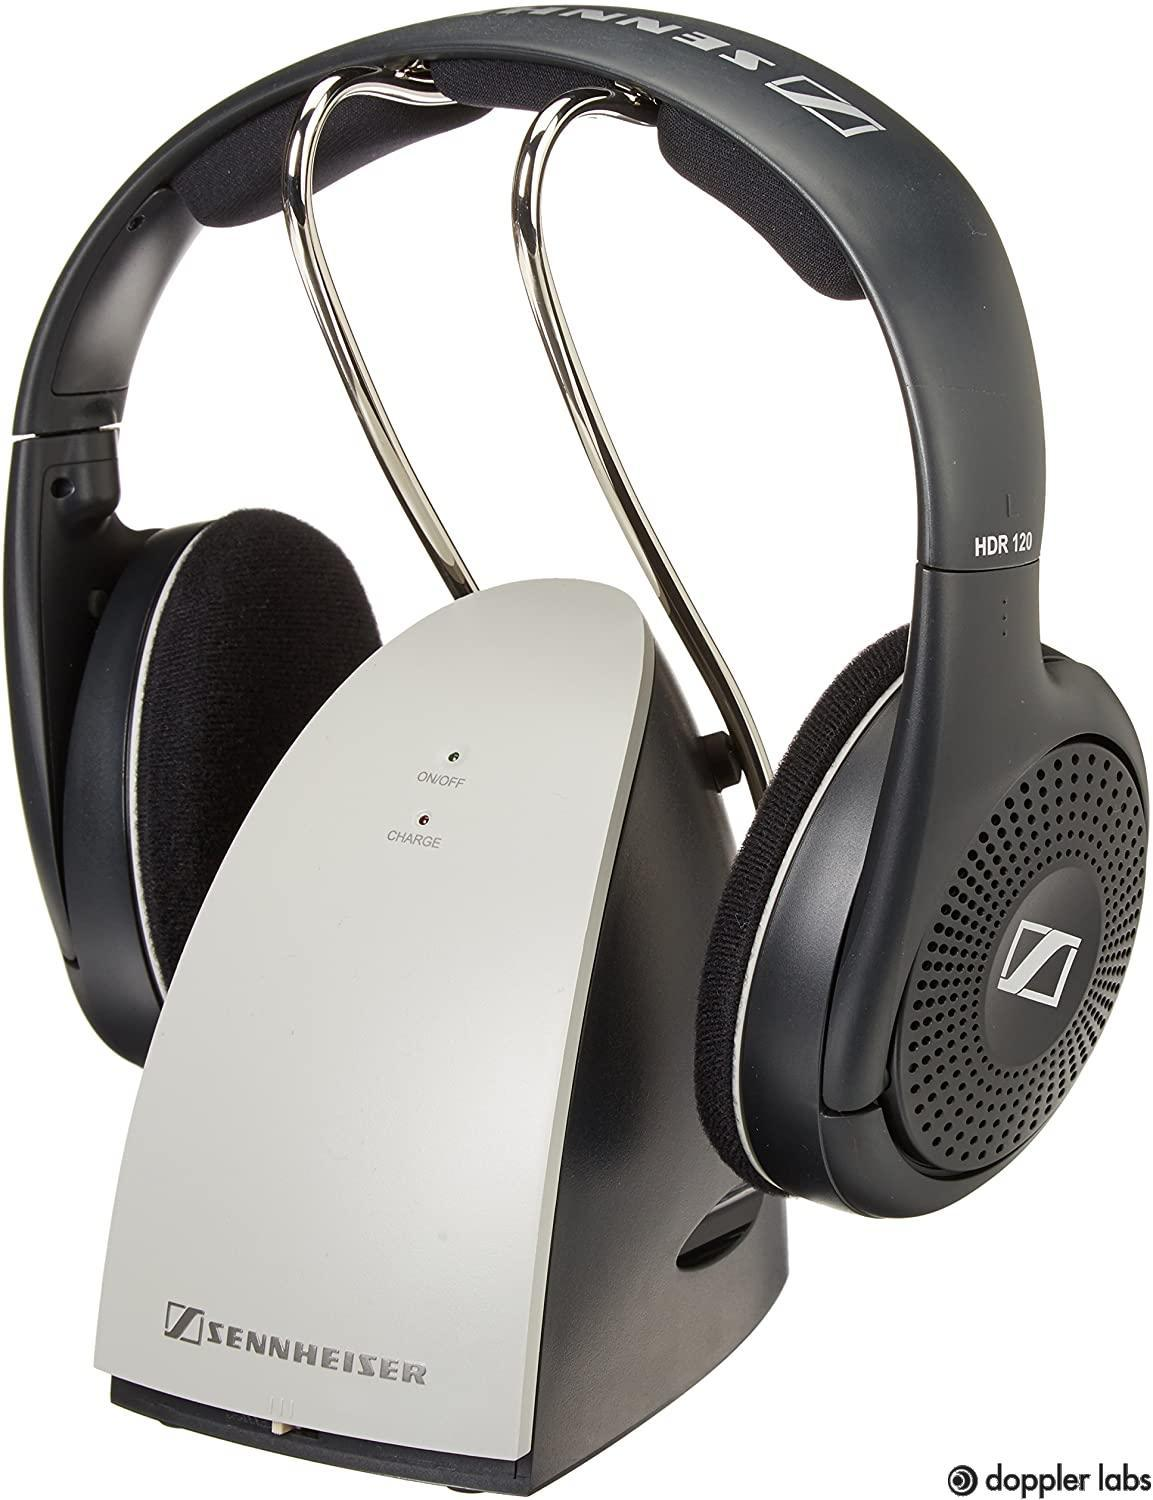 The Sennheiser RS120 is the classic that started it all